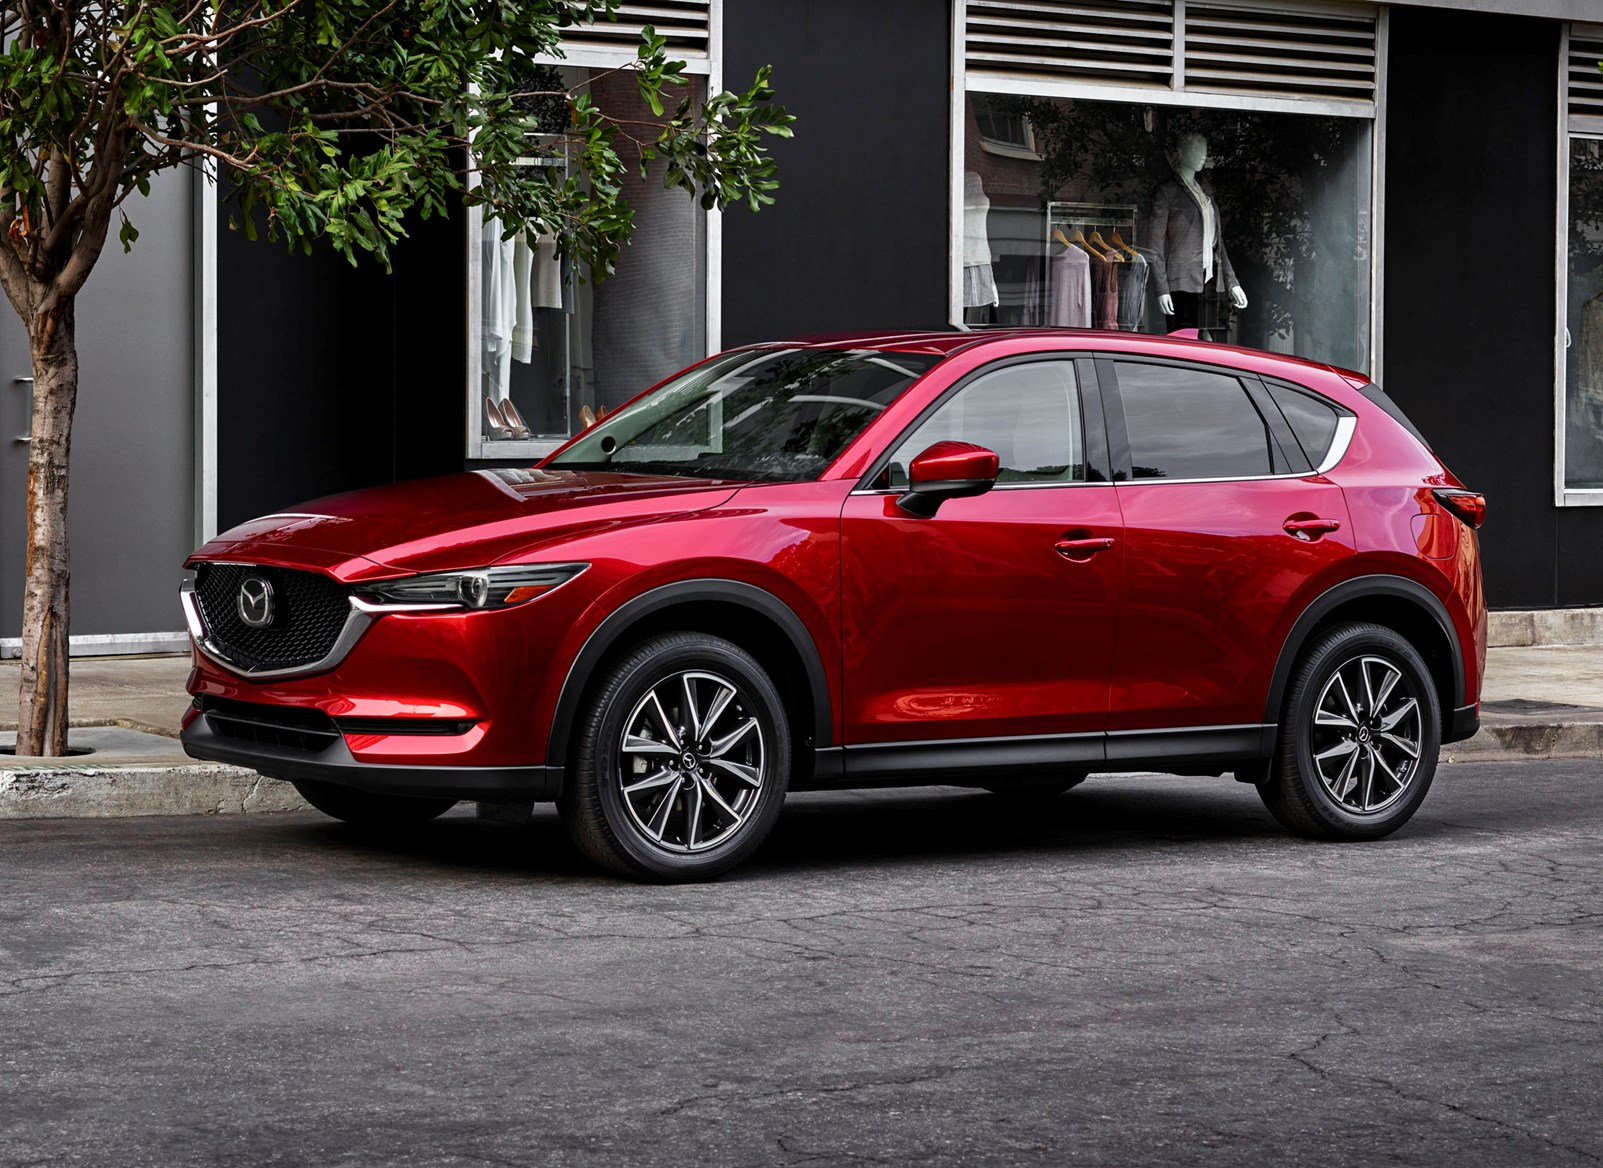 mazda cx-5 review: running costs | parkers